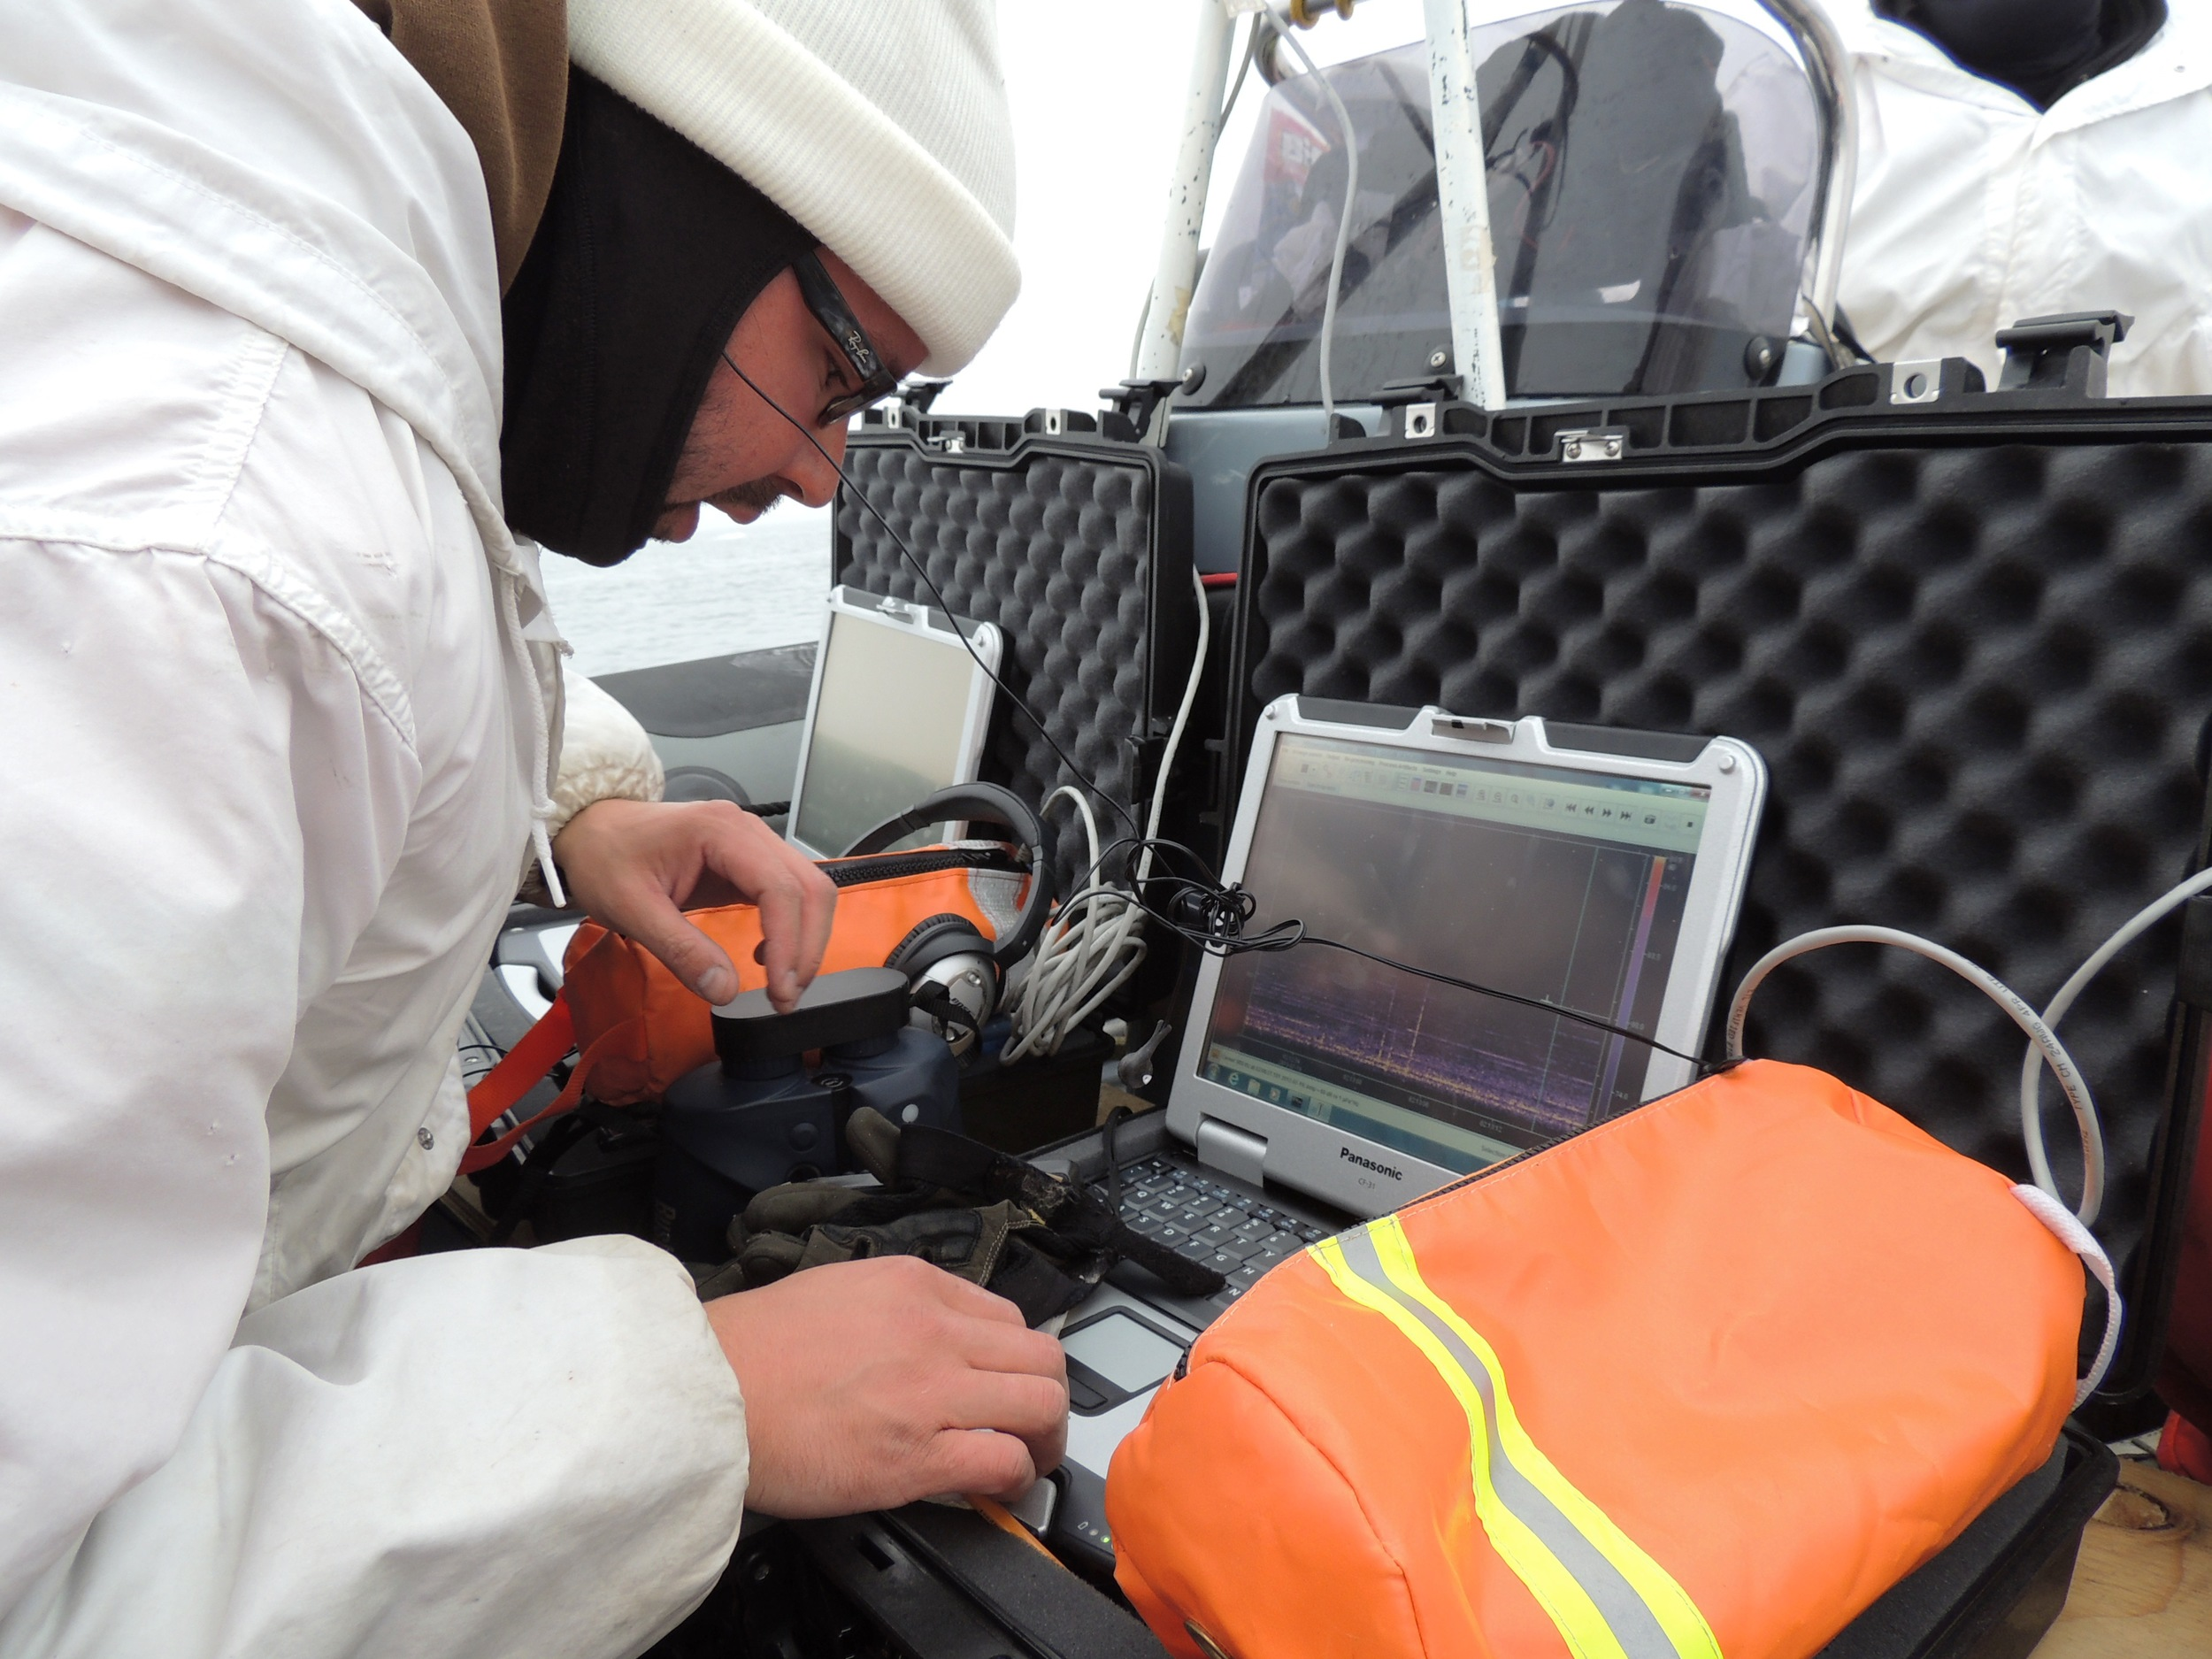 Passive acoustic monitoring (PAM) operator in the field detecting marine mammal calls